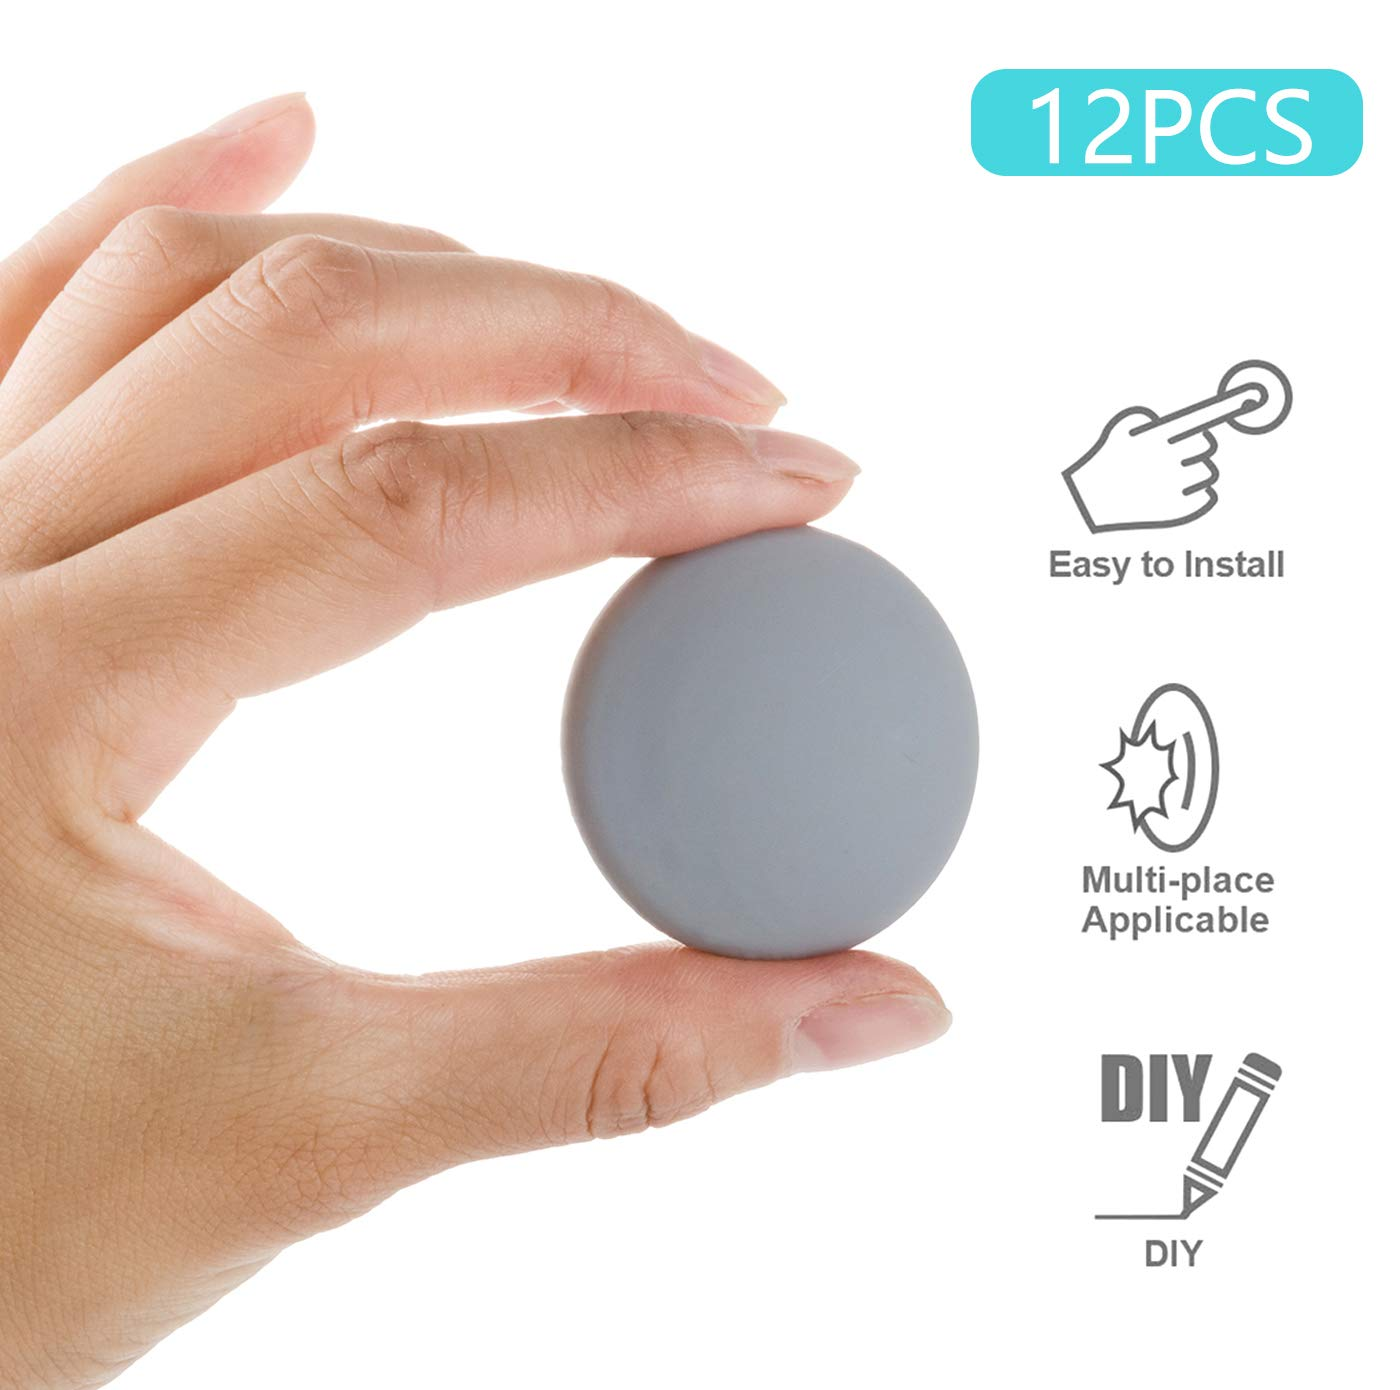 "12pcs Door Stopper Wall,1.57 Inch Silicone Wall Protector, Round Door Bumper with 3M Self Adhesive Door Knob Guard(Gray, 1.57"" 12pack)"